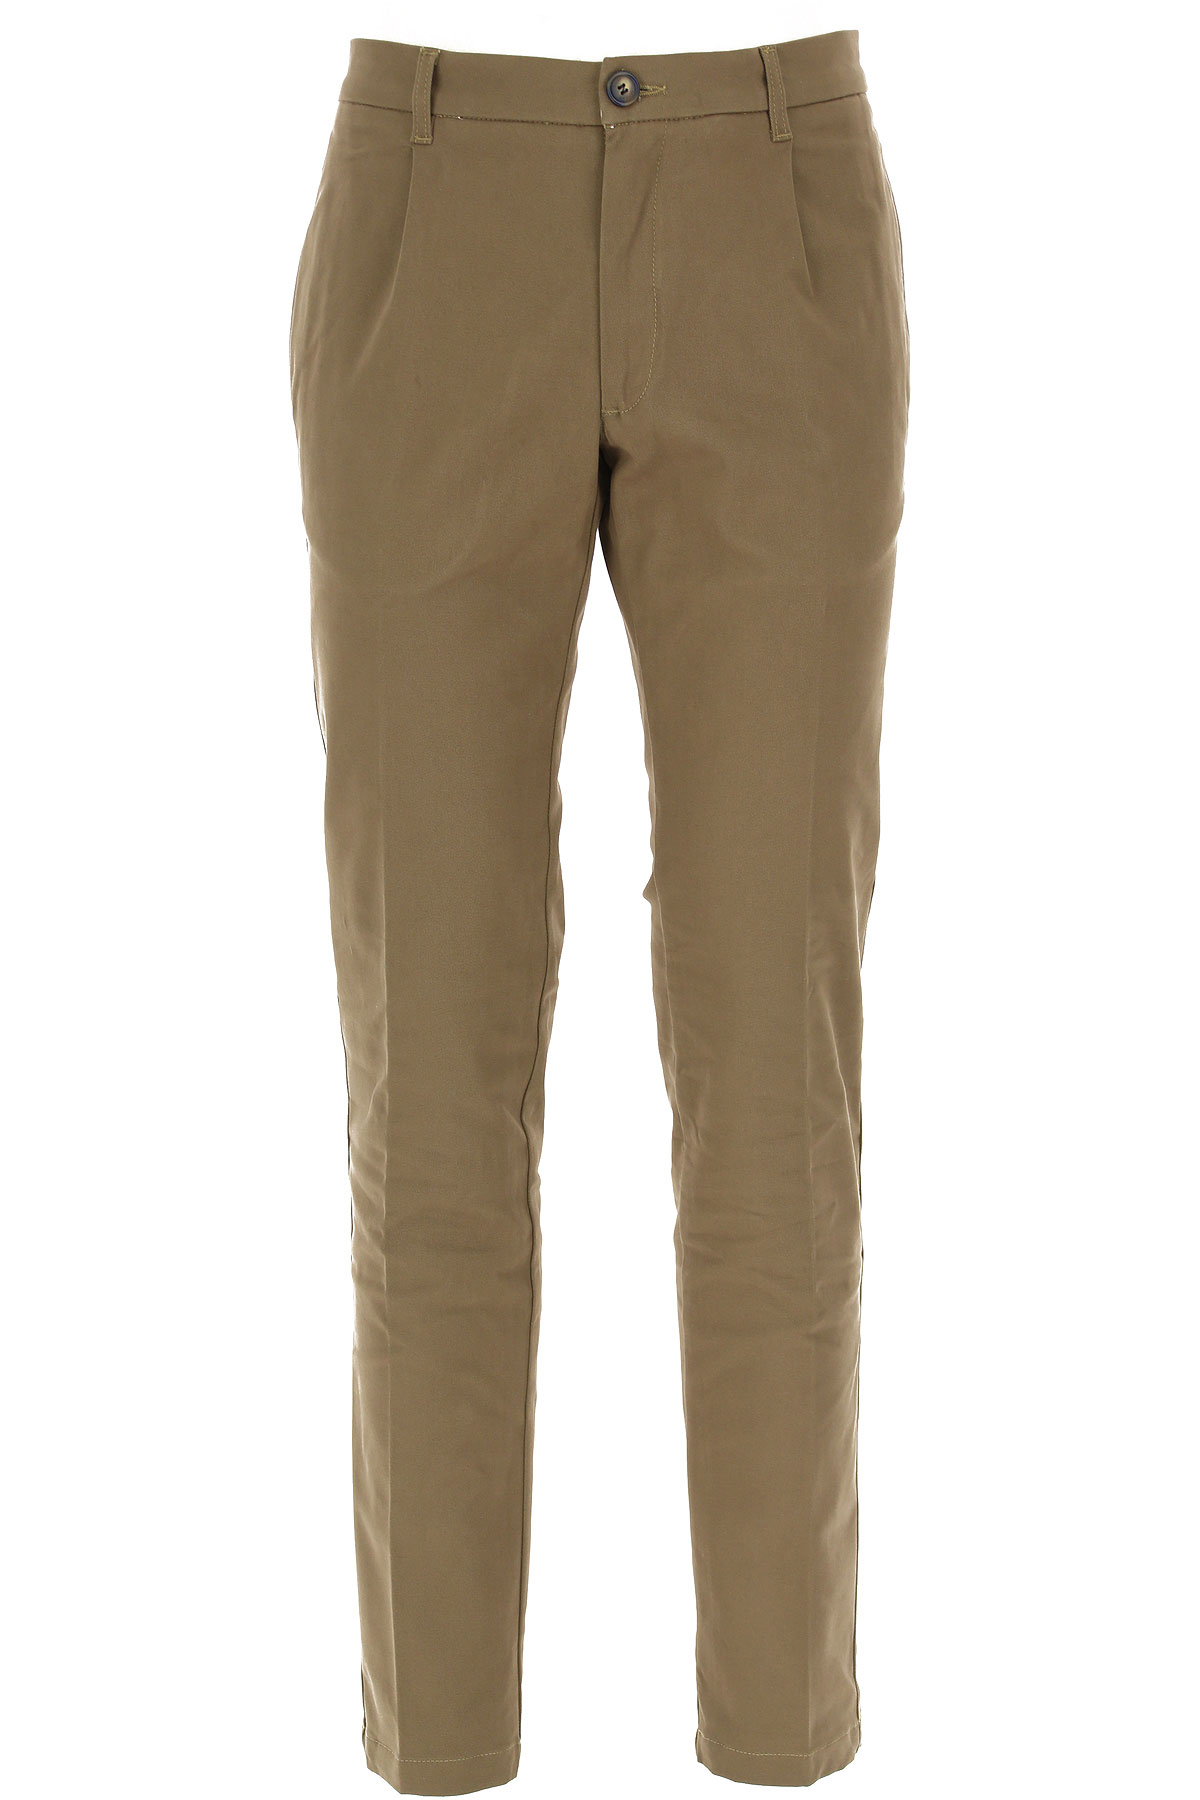 J.W. Brine Pants for Men, Dark Green, Cotton, 2019, 30 36 38 XXXL